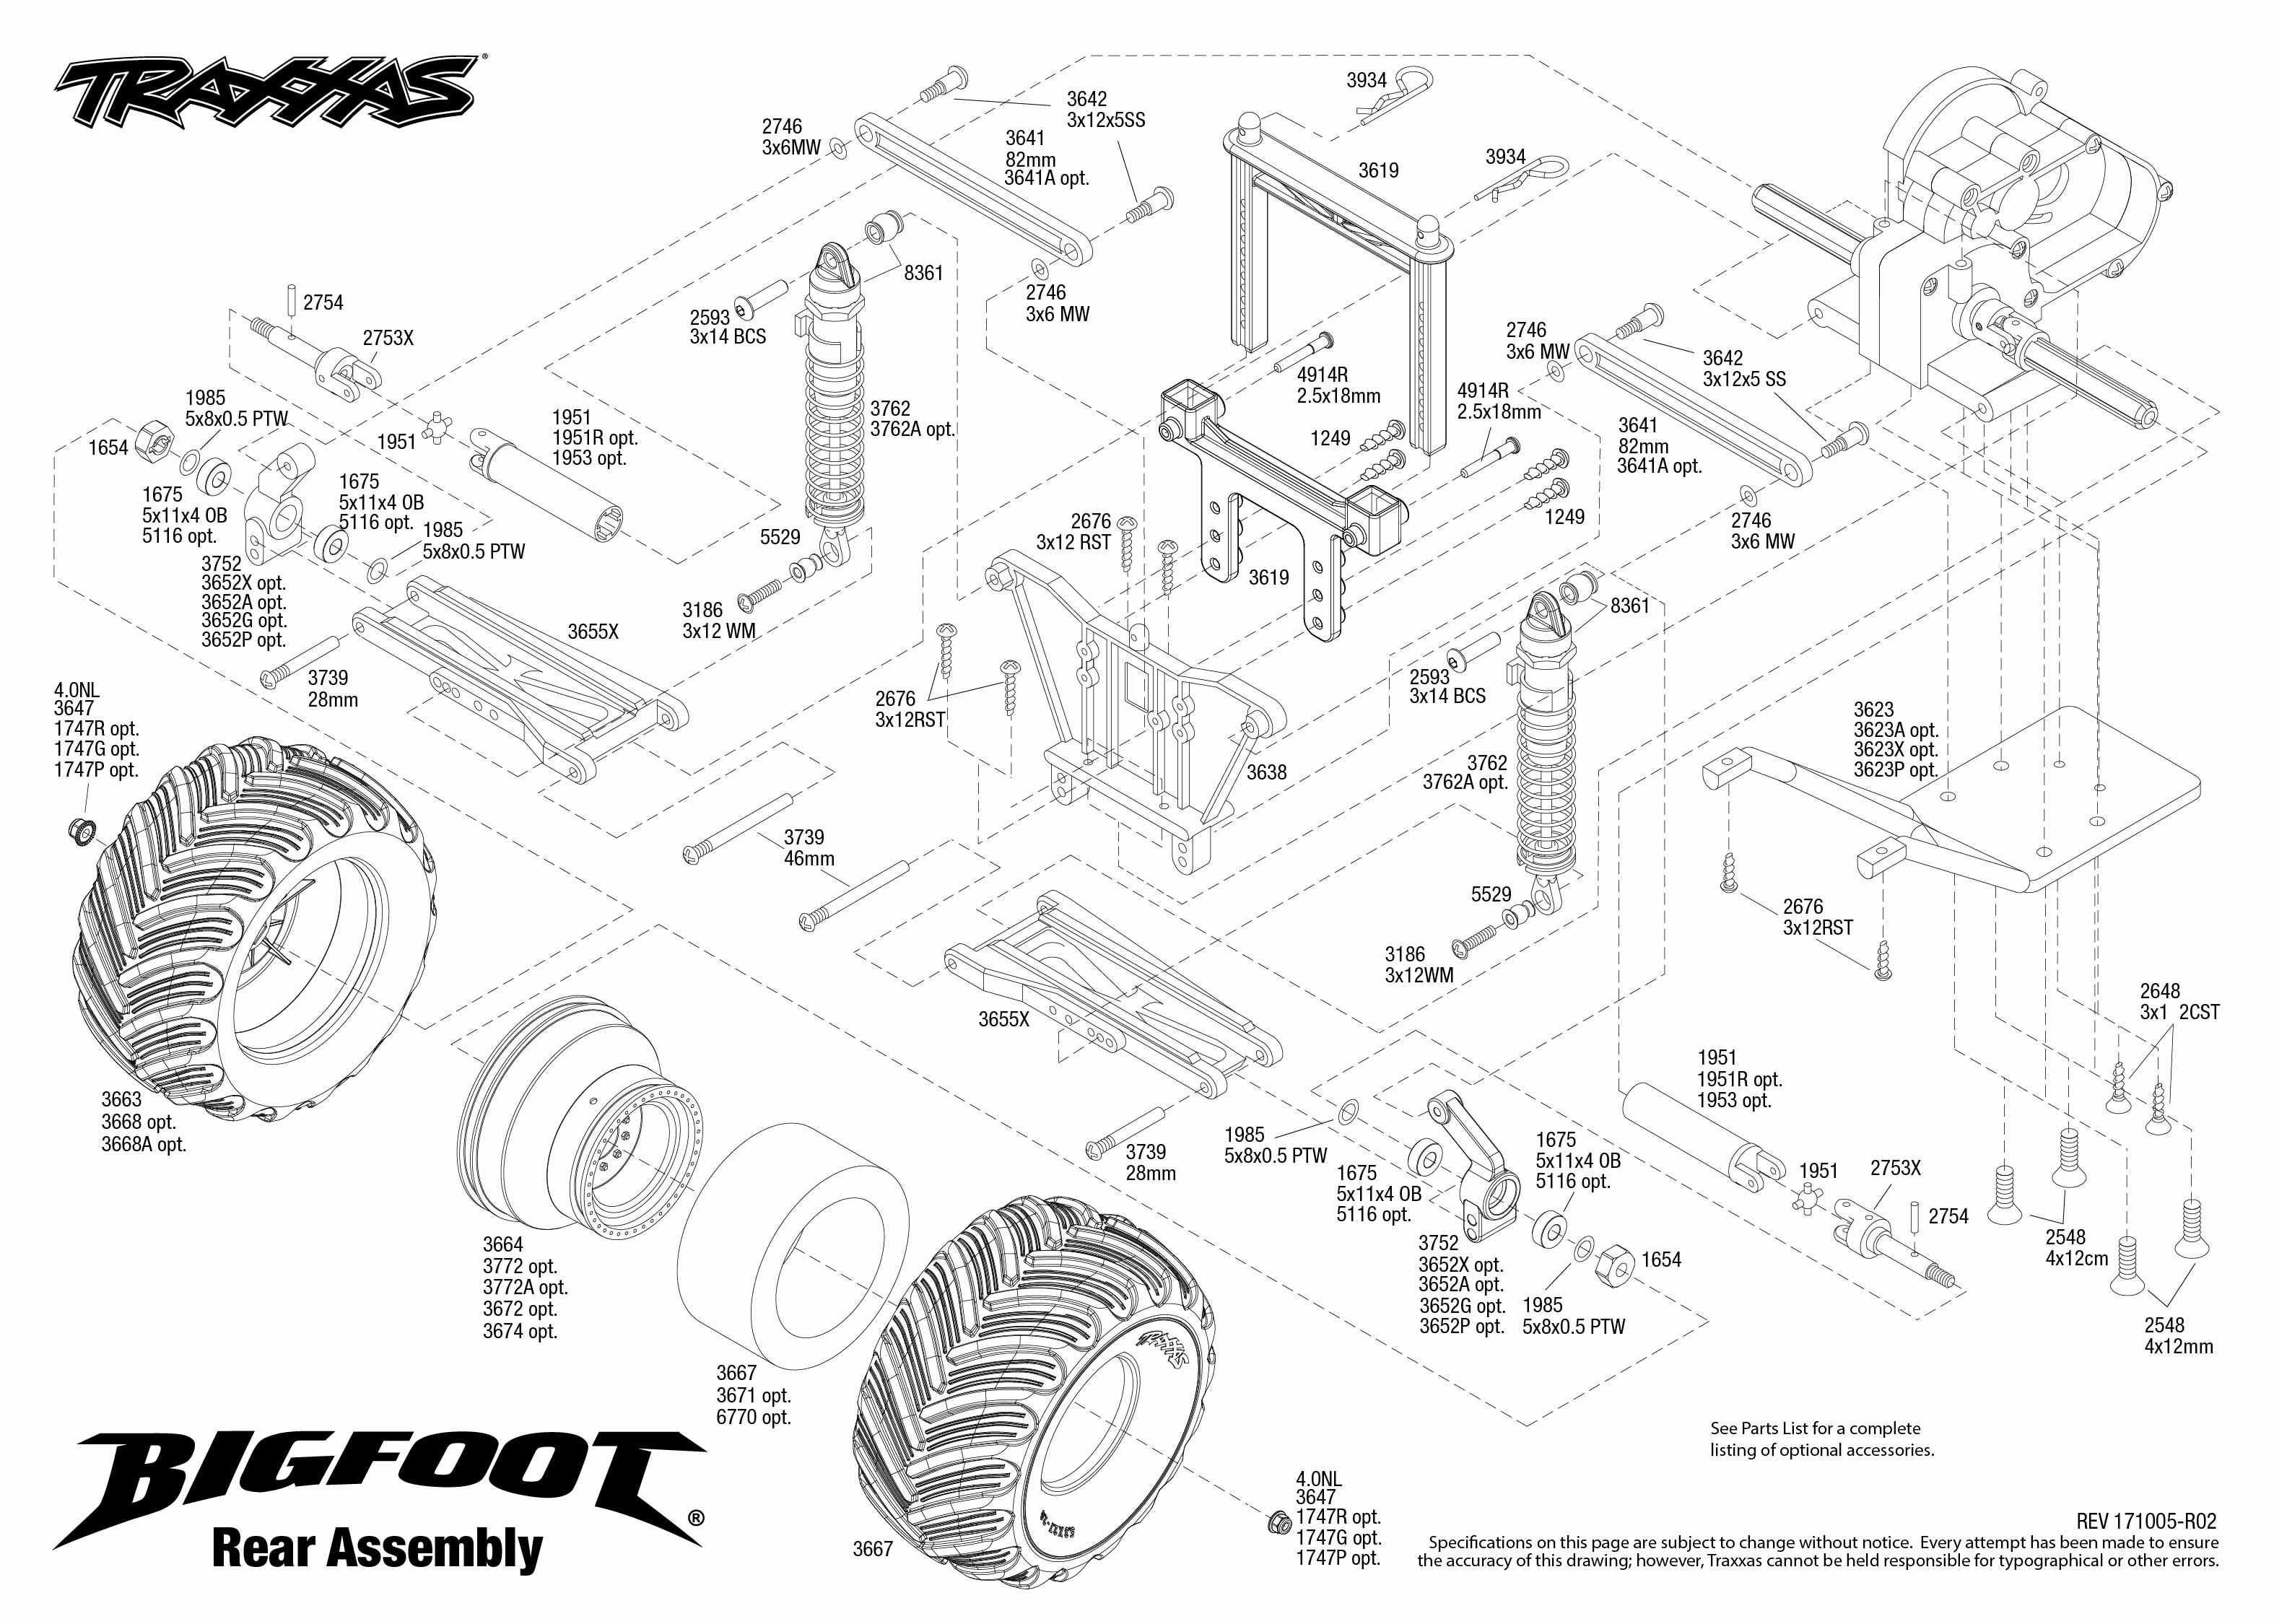 bigfoot 36084 1 rear assembly exploded view traxxas rh traxxas com traxxas jato parts diagram traxxas skully parts diagram